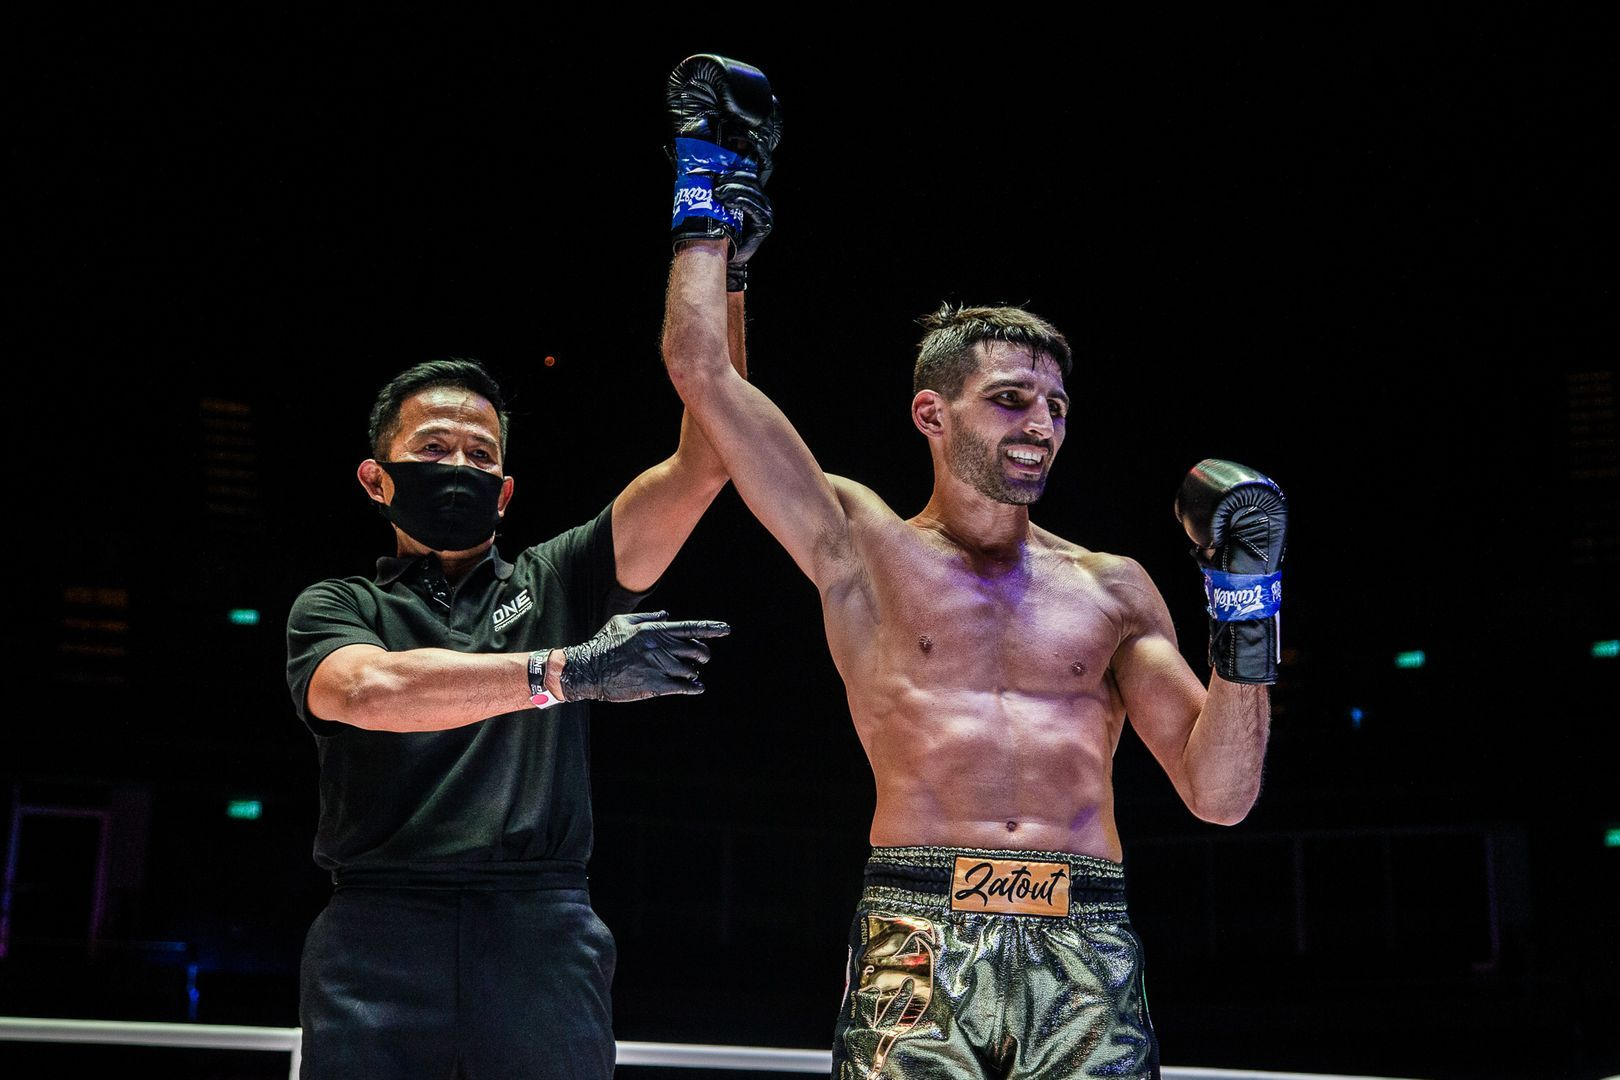 Mehdi Zatout gets his hand raised at ONE: NO SURRENDER II